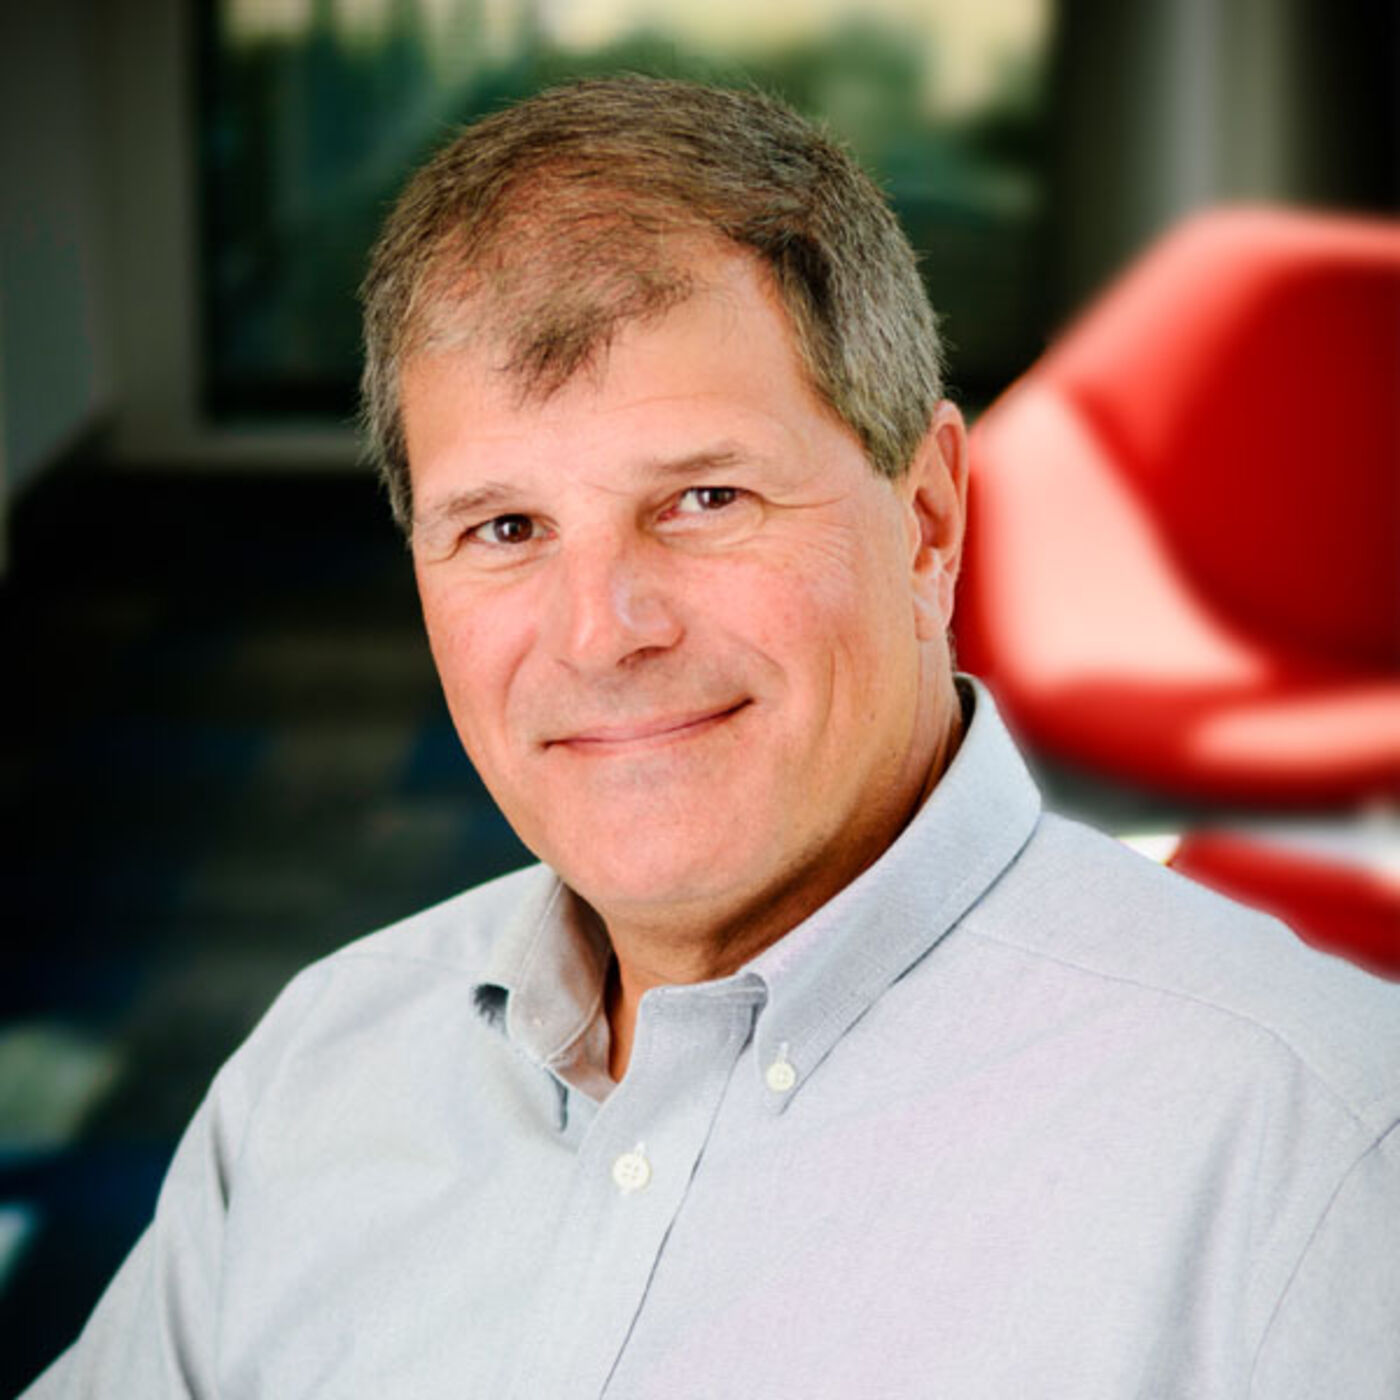 Joe Bellini Chief Operating Officer of One Network